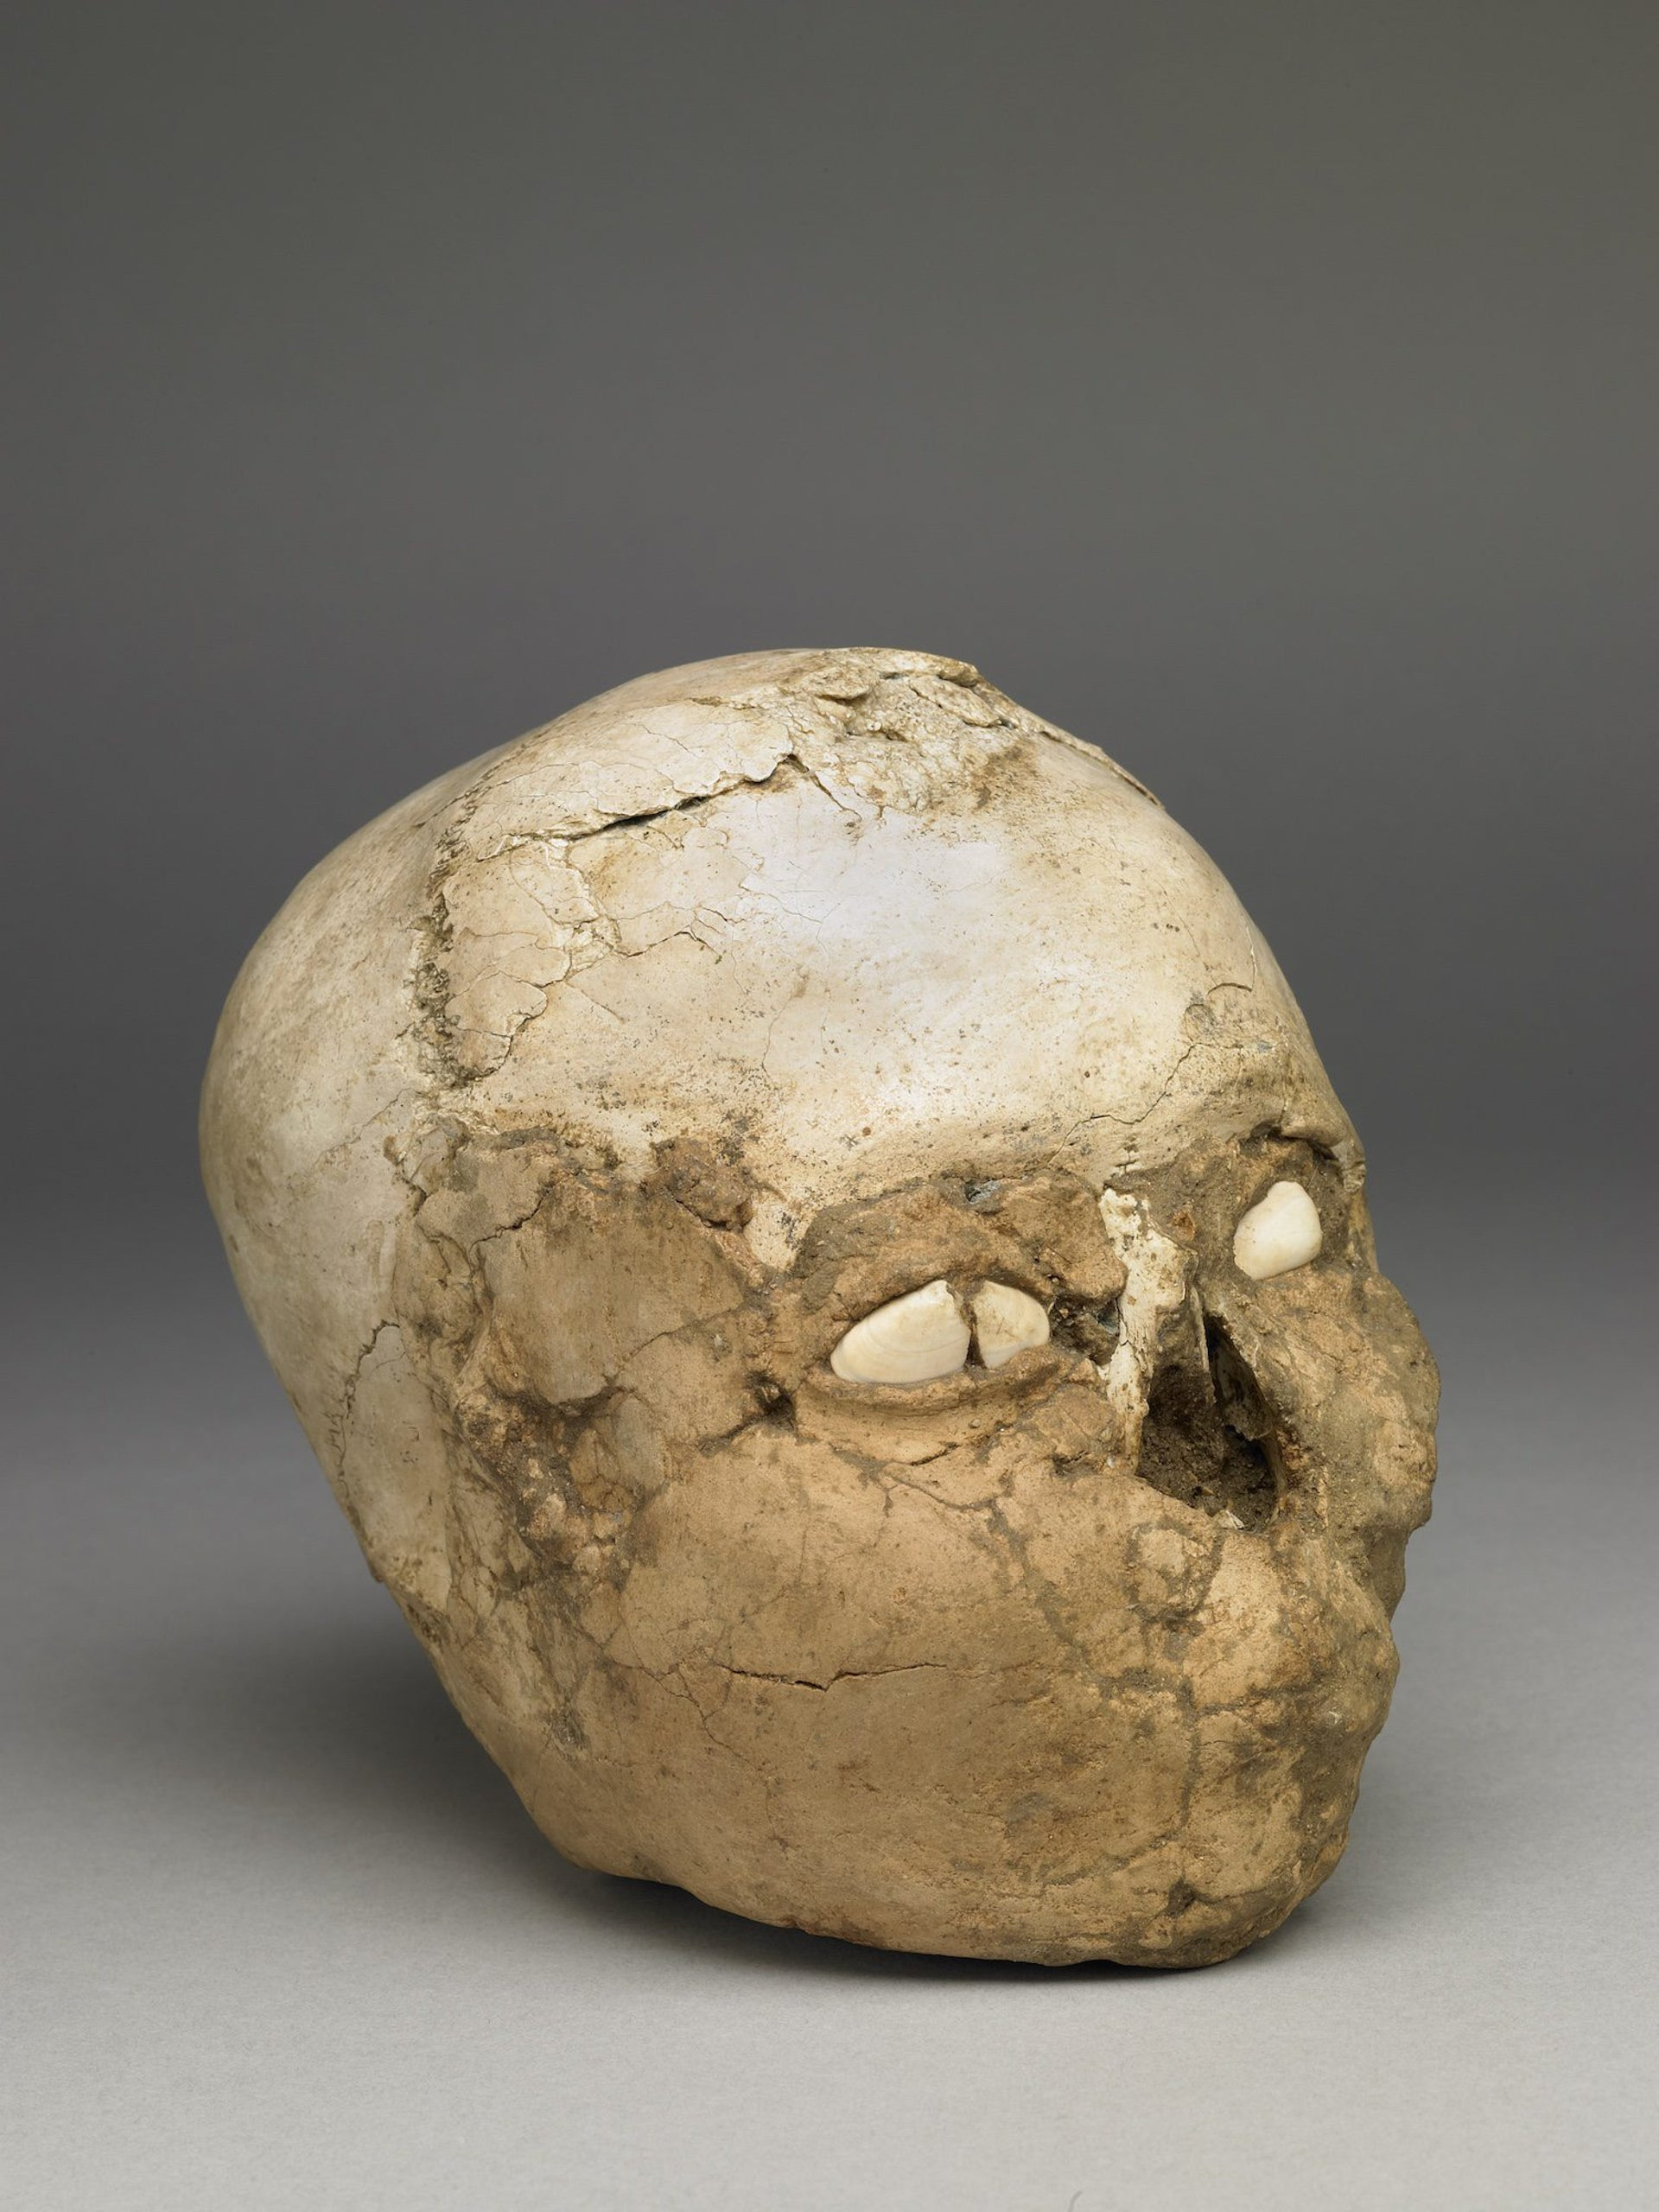 The British Museum's plastered skull, found in Jericho in 1953 and dated to around 9,500 years ago.